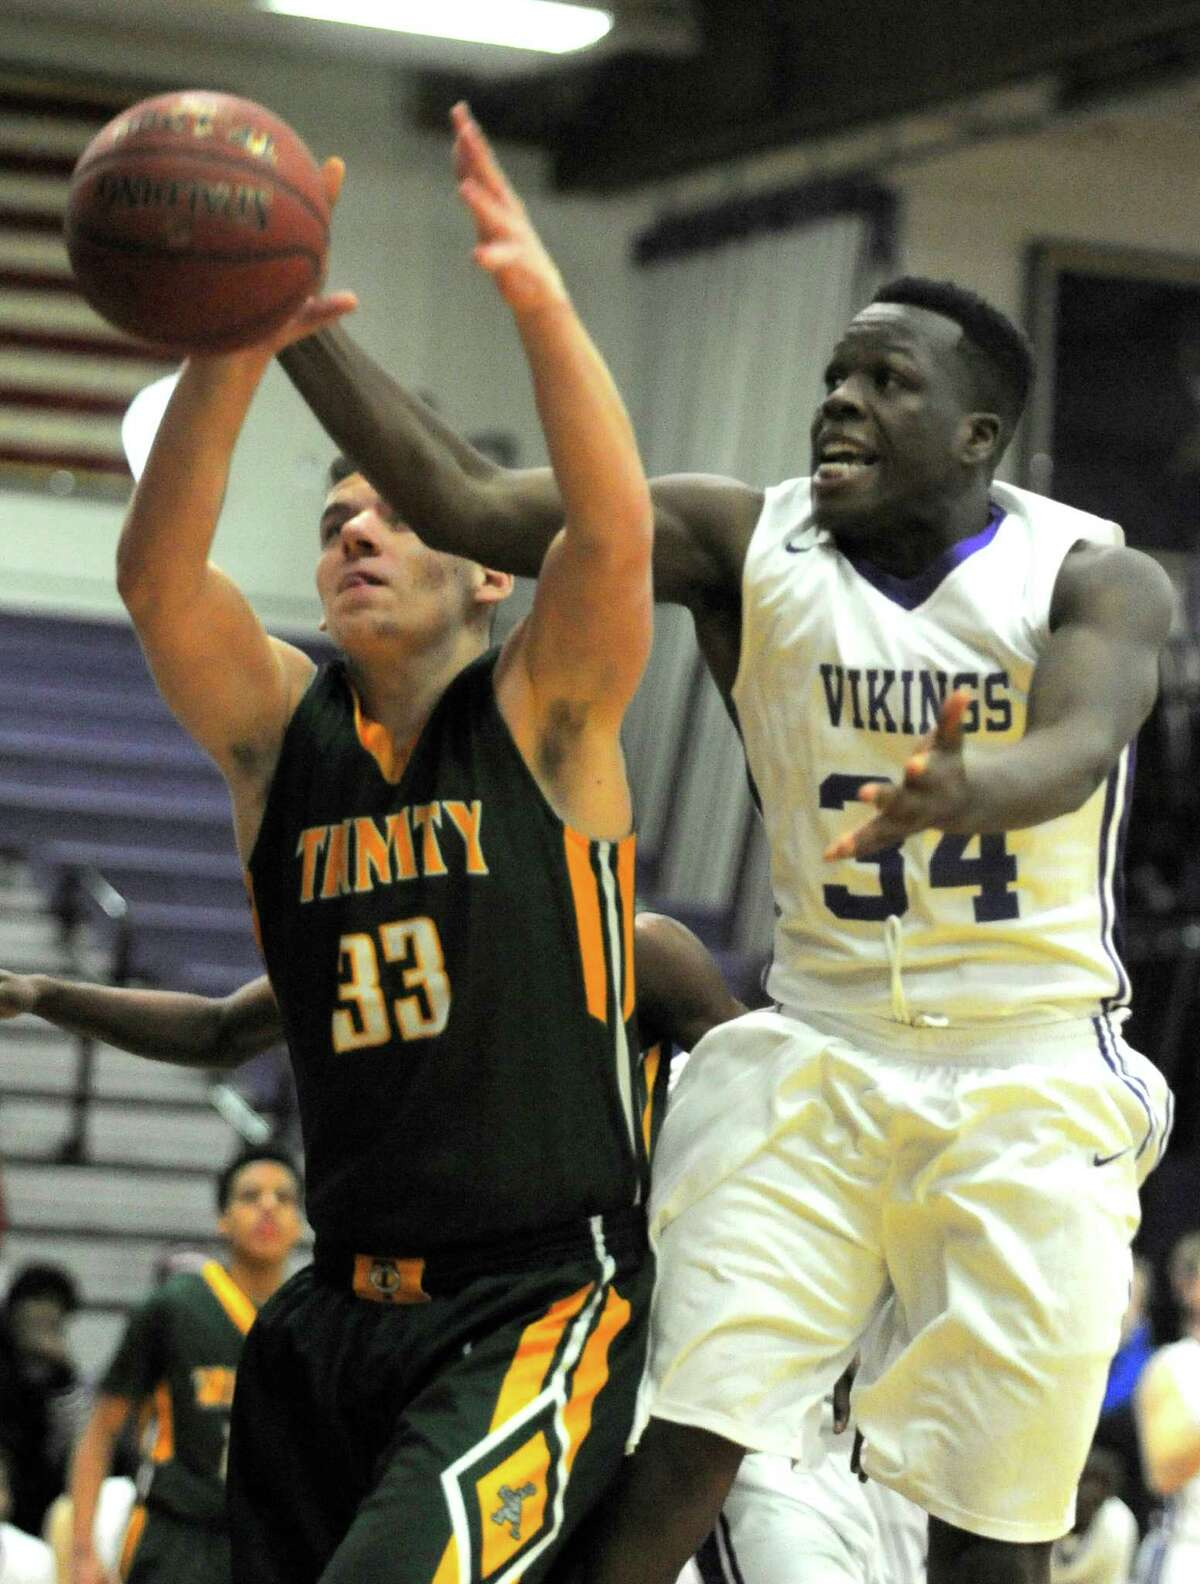 Trinity's Thomas Tamiolakis (33) and Westhill's Nate Jefferson (34) battle for a rebound in the second quarter of a FCIAC basketball game in Stamford, Conn. on Tuesday, Jan. 19, 2016.Westhill defeated Trinity Catholic 52-45.